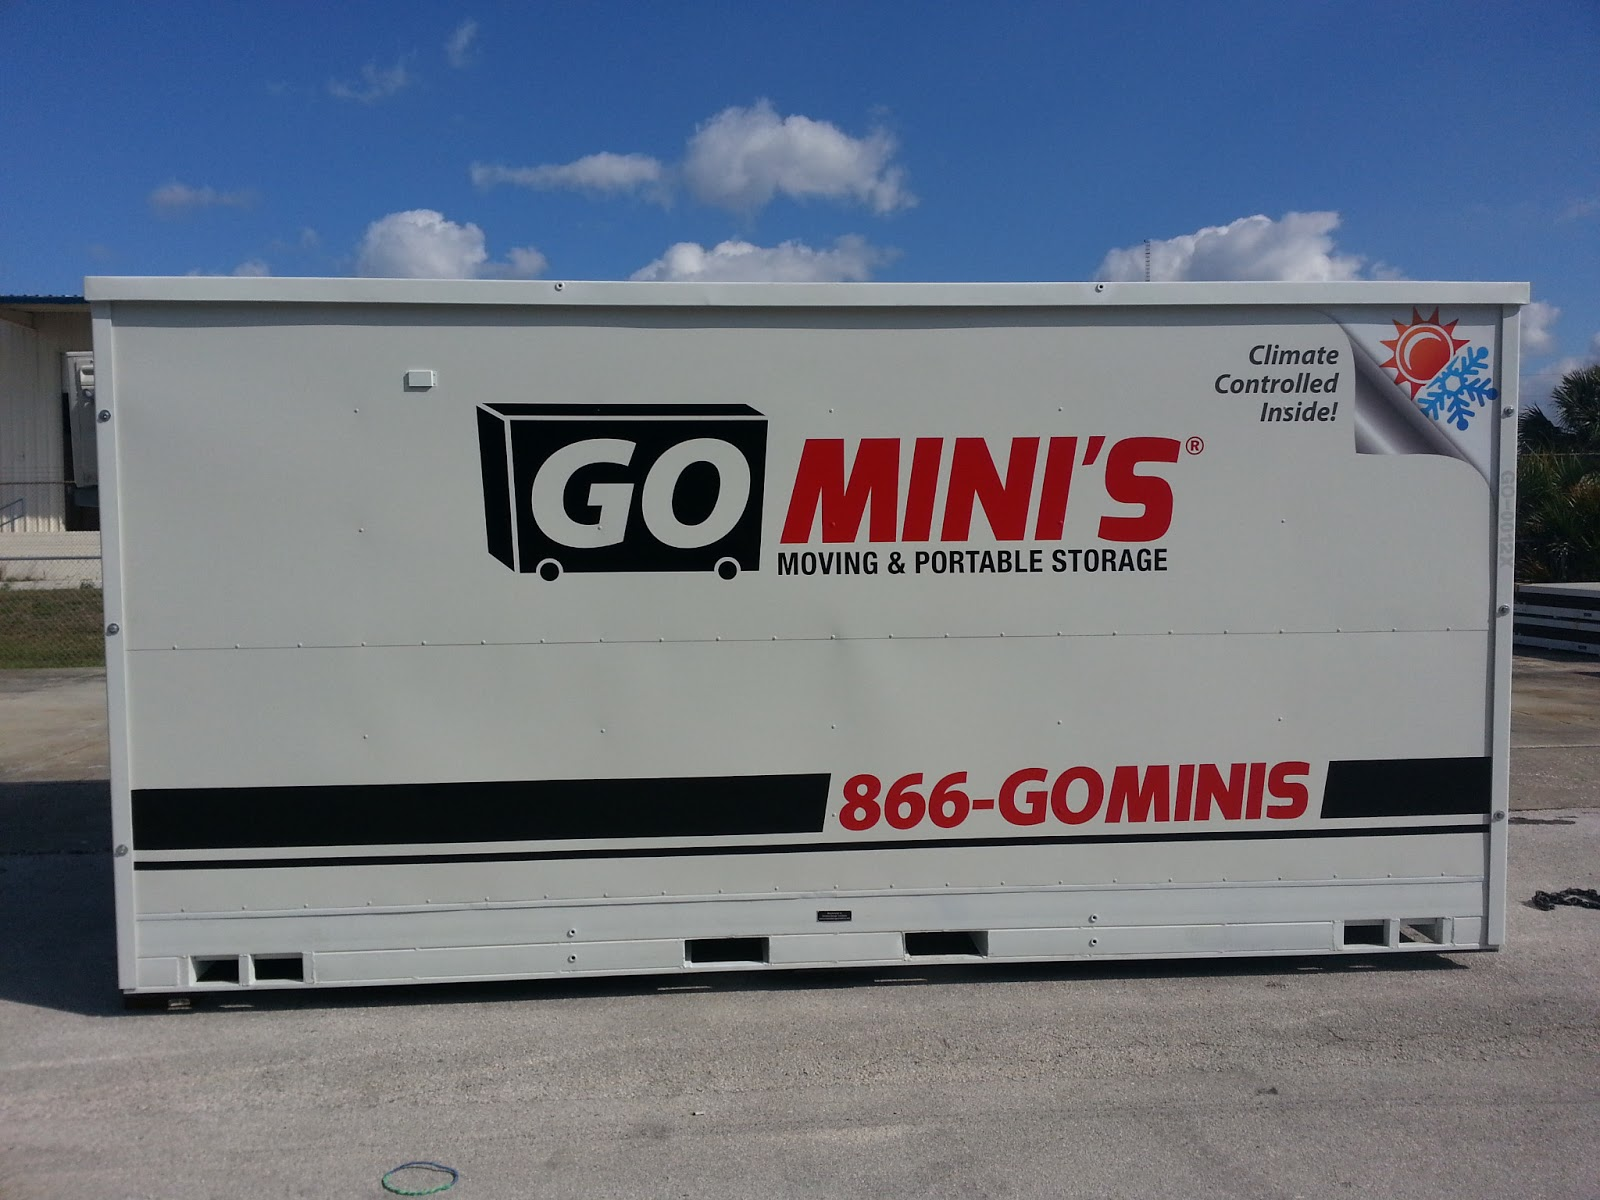 In 2008 Go Miniu0027s introduced Portable Refrigeration/Freezer Containers into its fleet for those interested in storing things like perishable cold storage ... & Not all Storage Containers are Created Equal: Go Miniu0027s Introduces ...